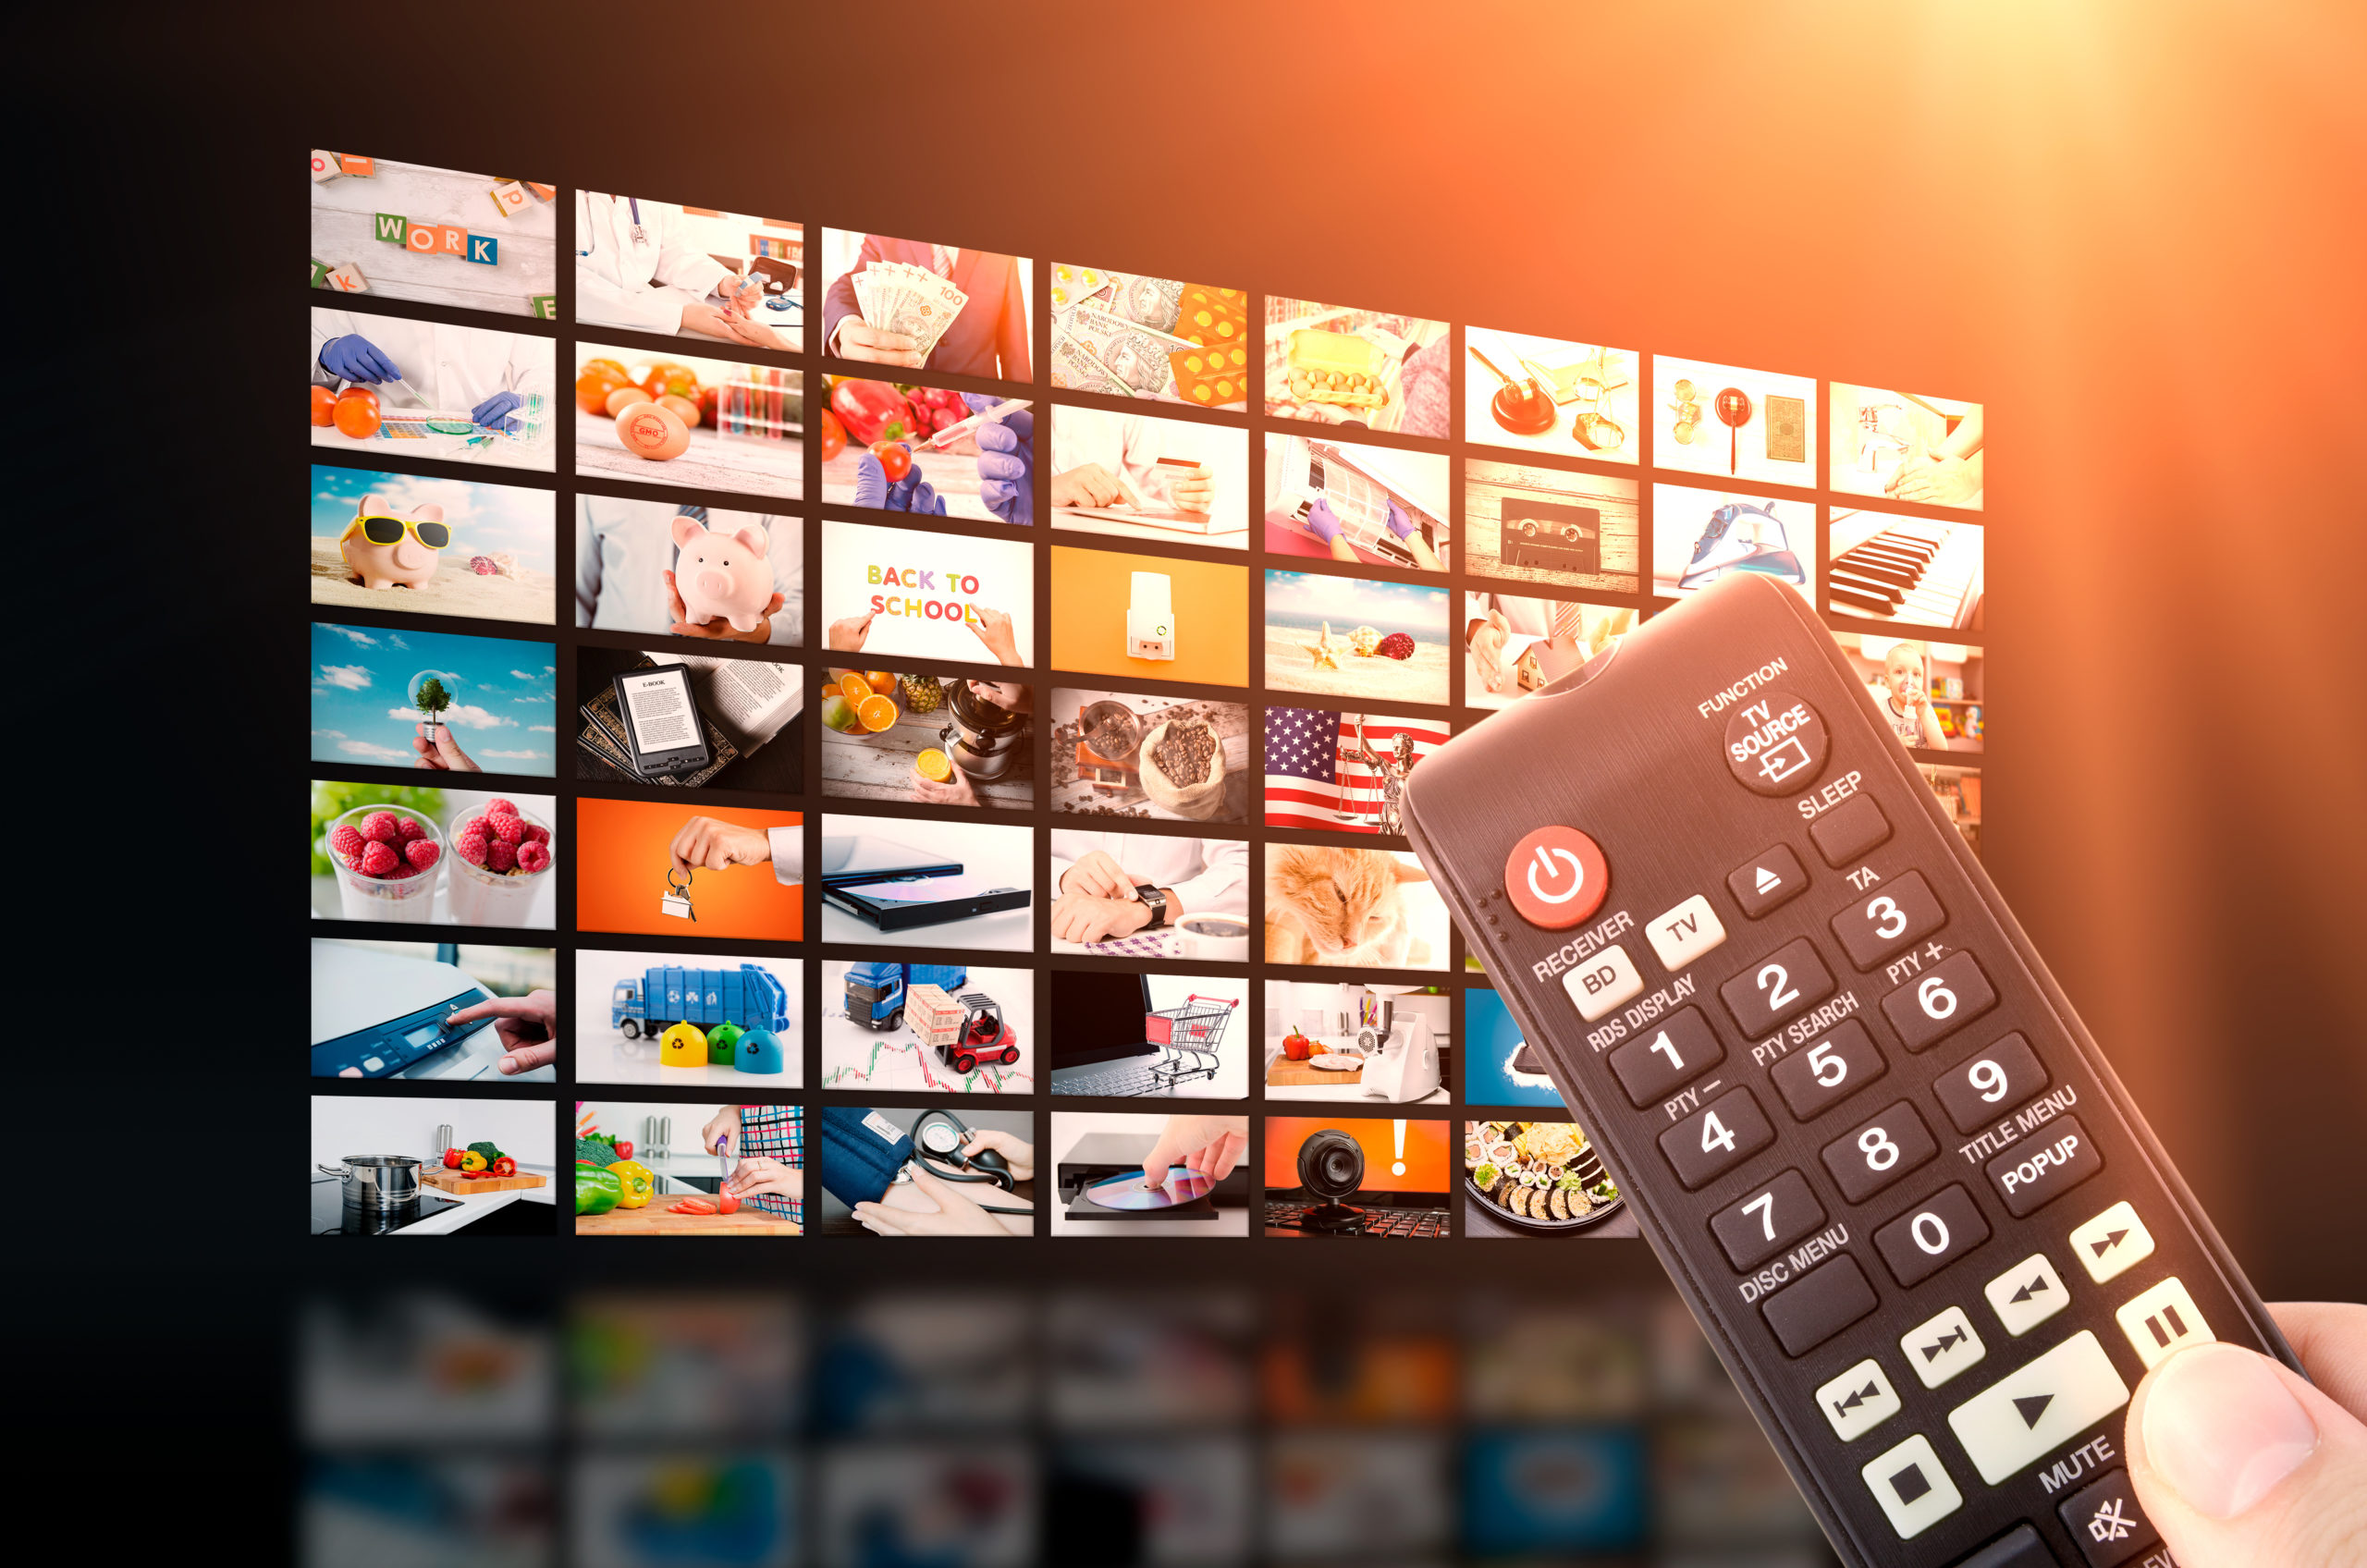 Watching Arabic TV shows, movies, series are a great way to immerse in the language. Watch more TV and learn more Arabic. It's just that simple.